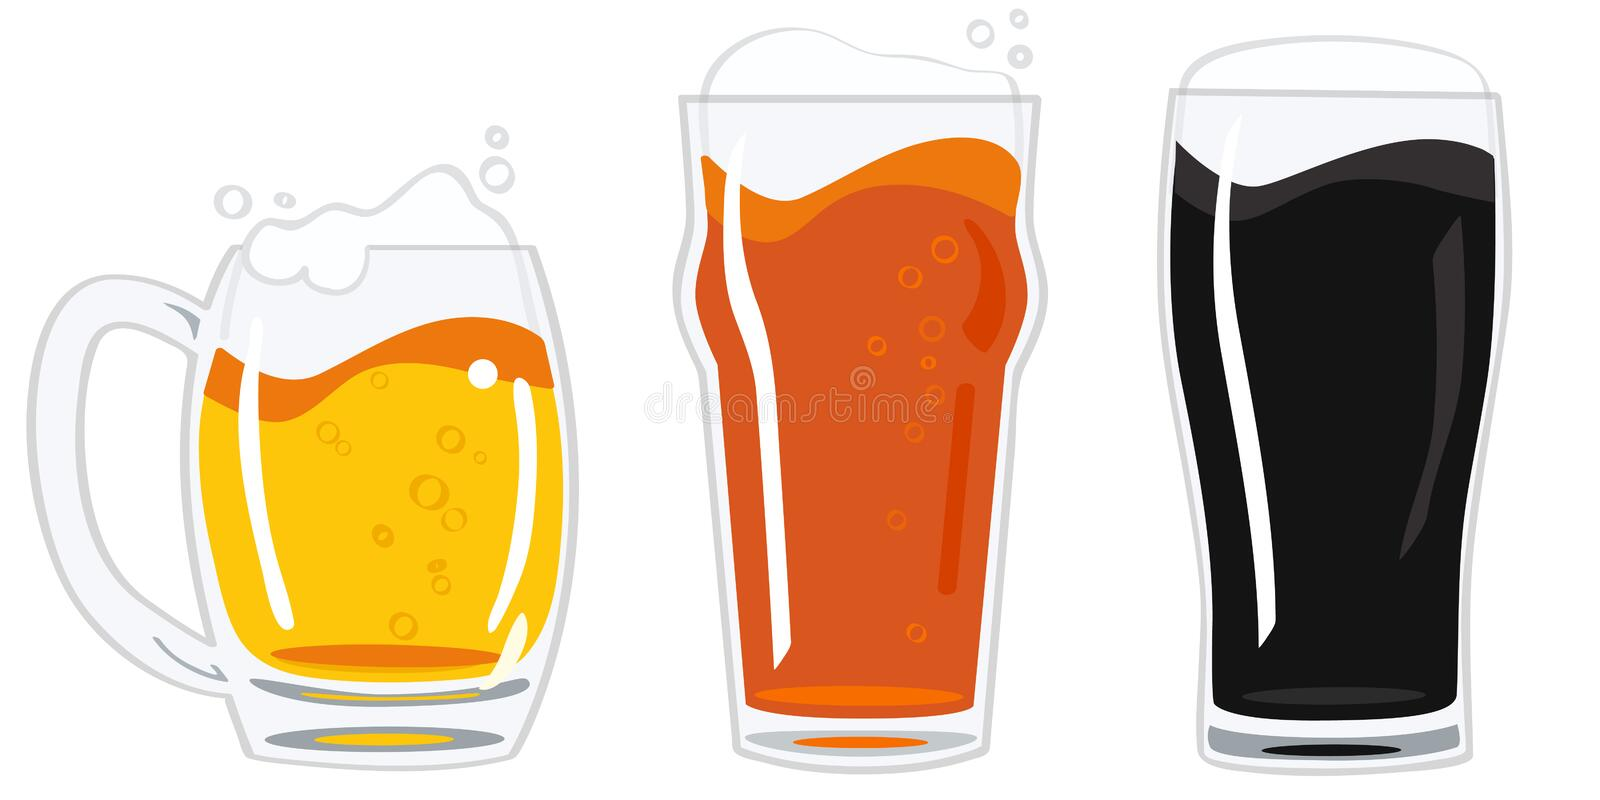 Glasses of beer vector. Illustration of three glasses with different kind of beer - light, red and dark isolated on white + vector esp file stock illustration